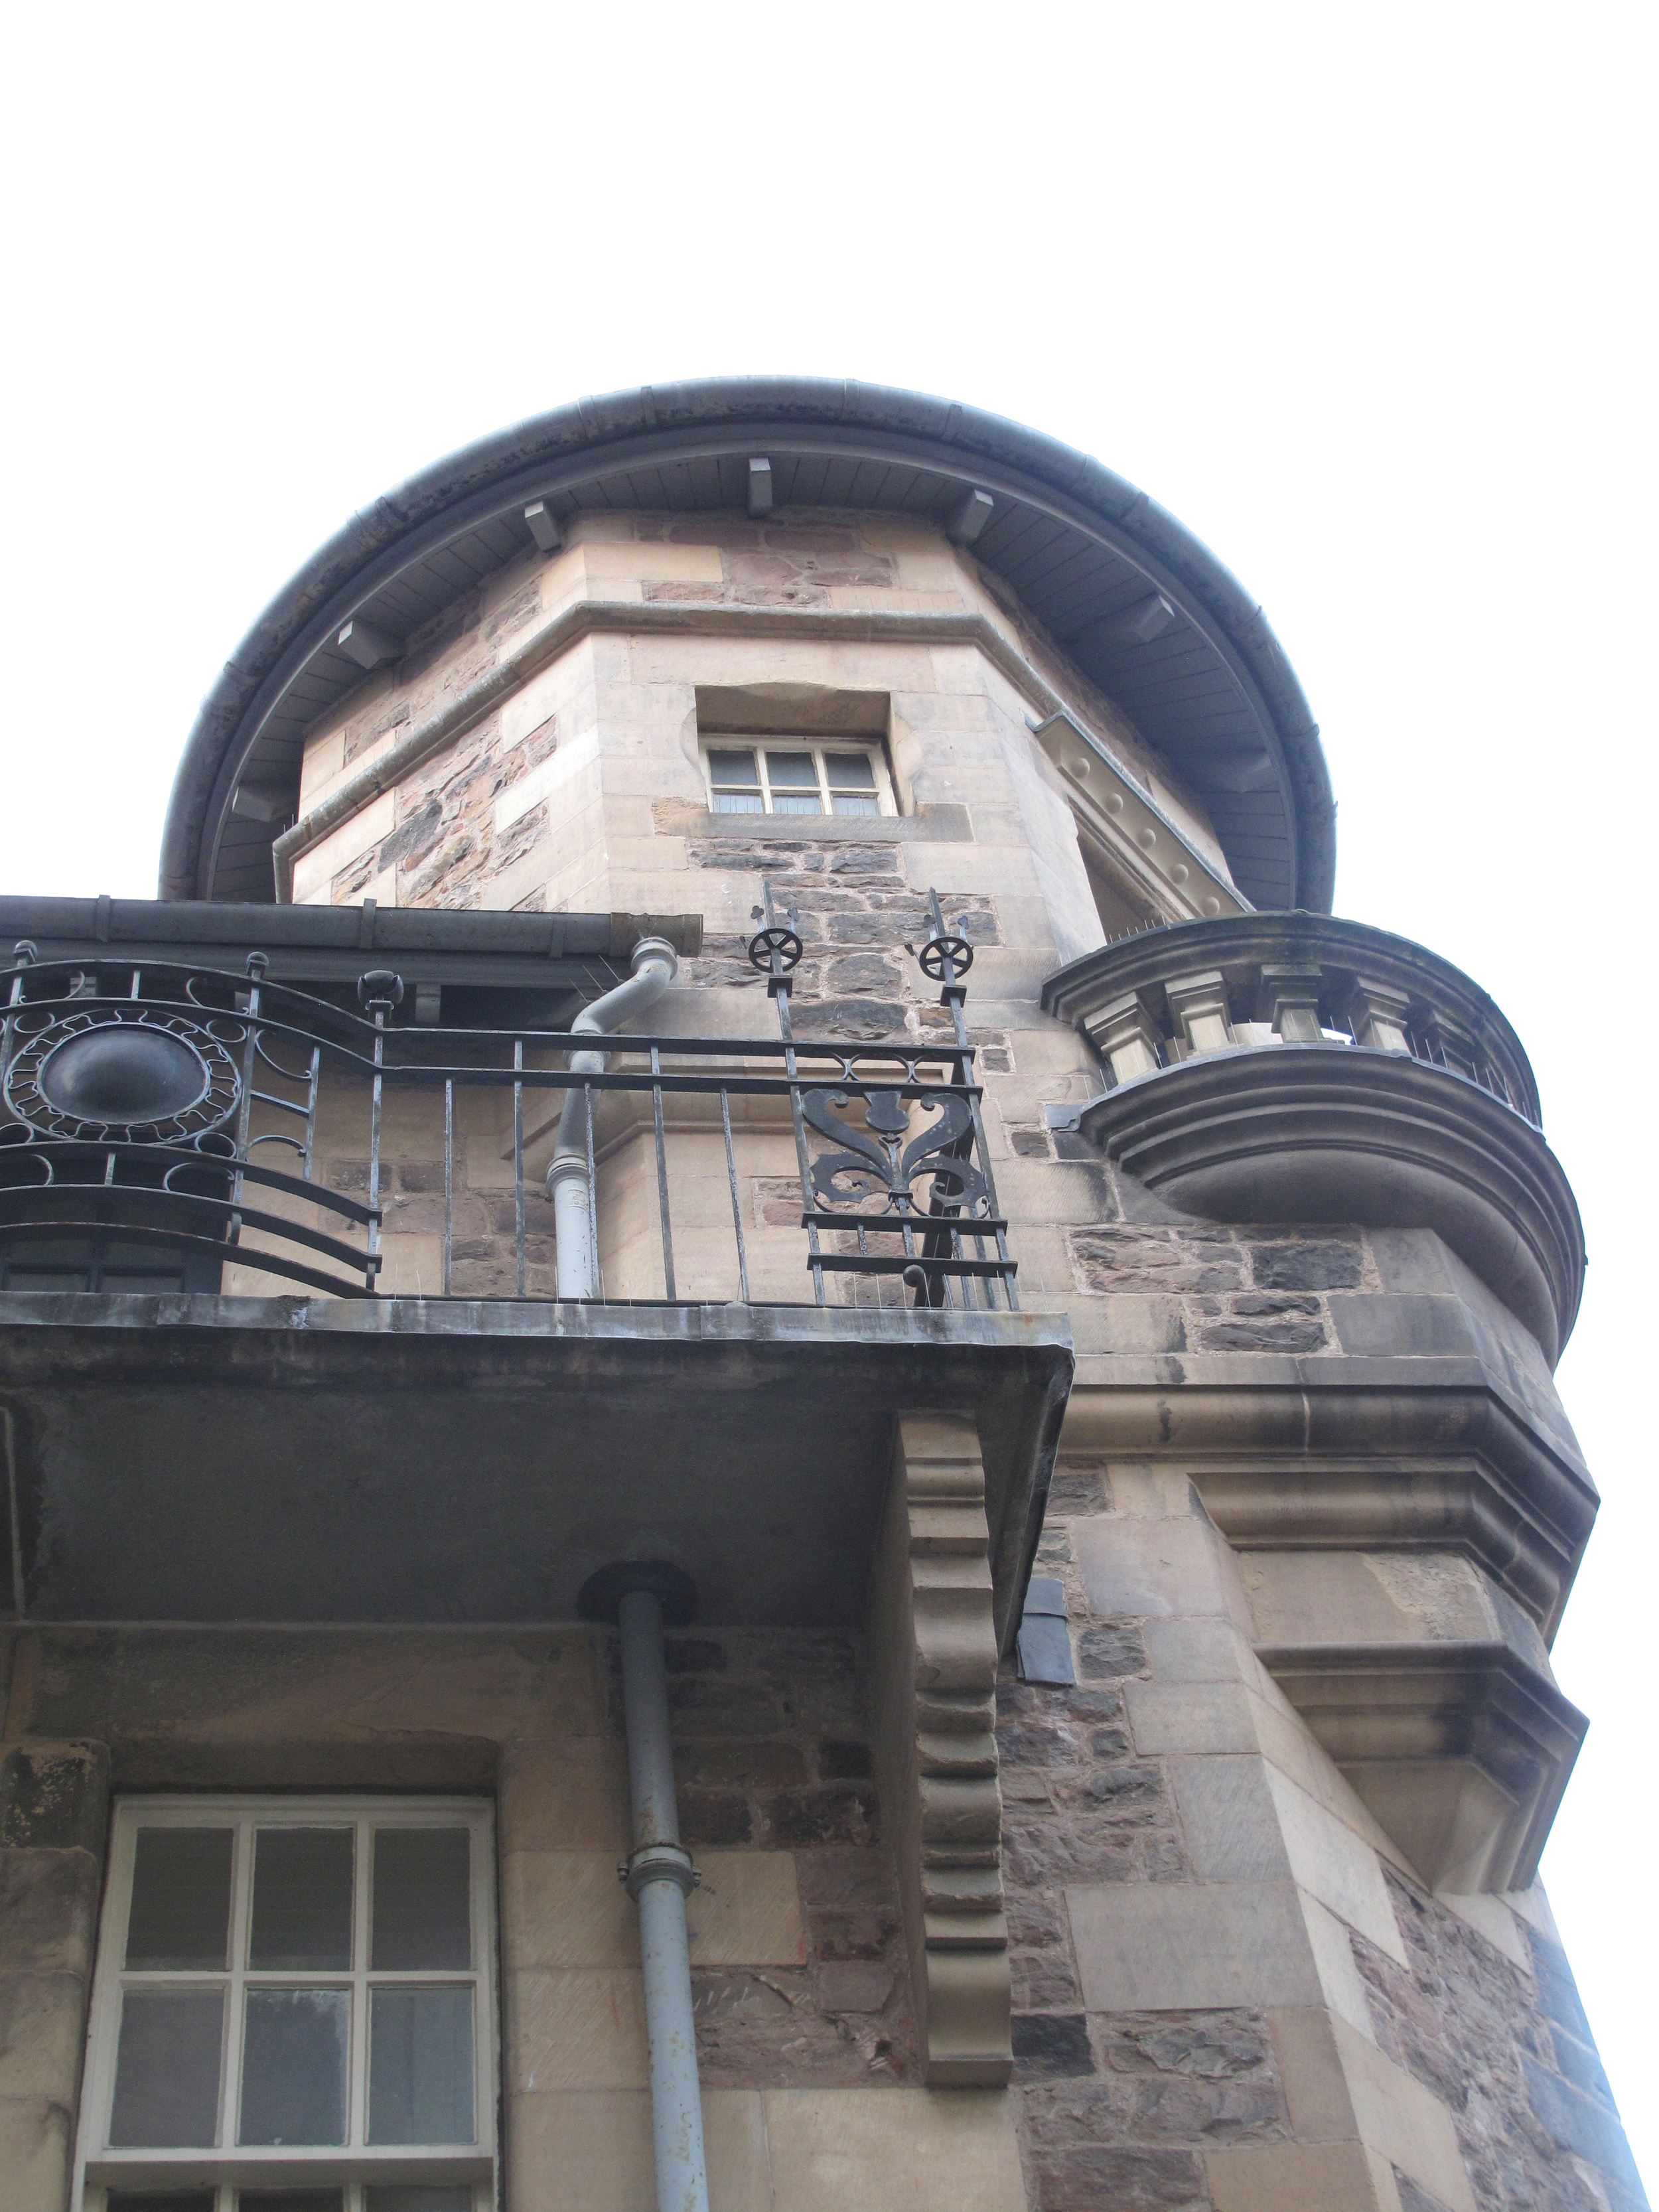 Lady Stair's Close house and turret.